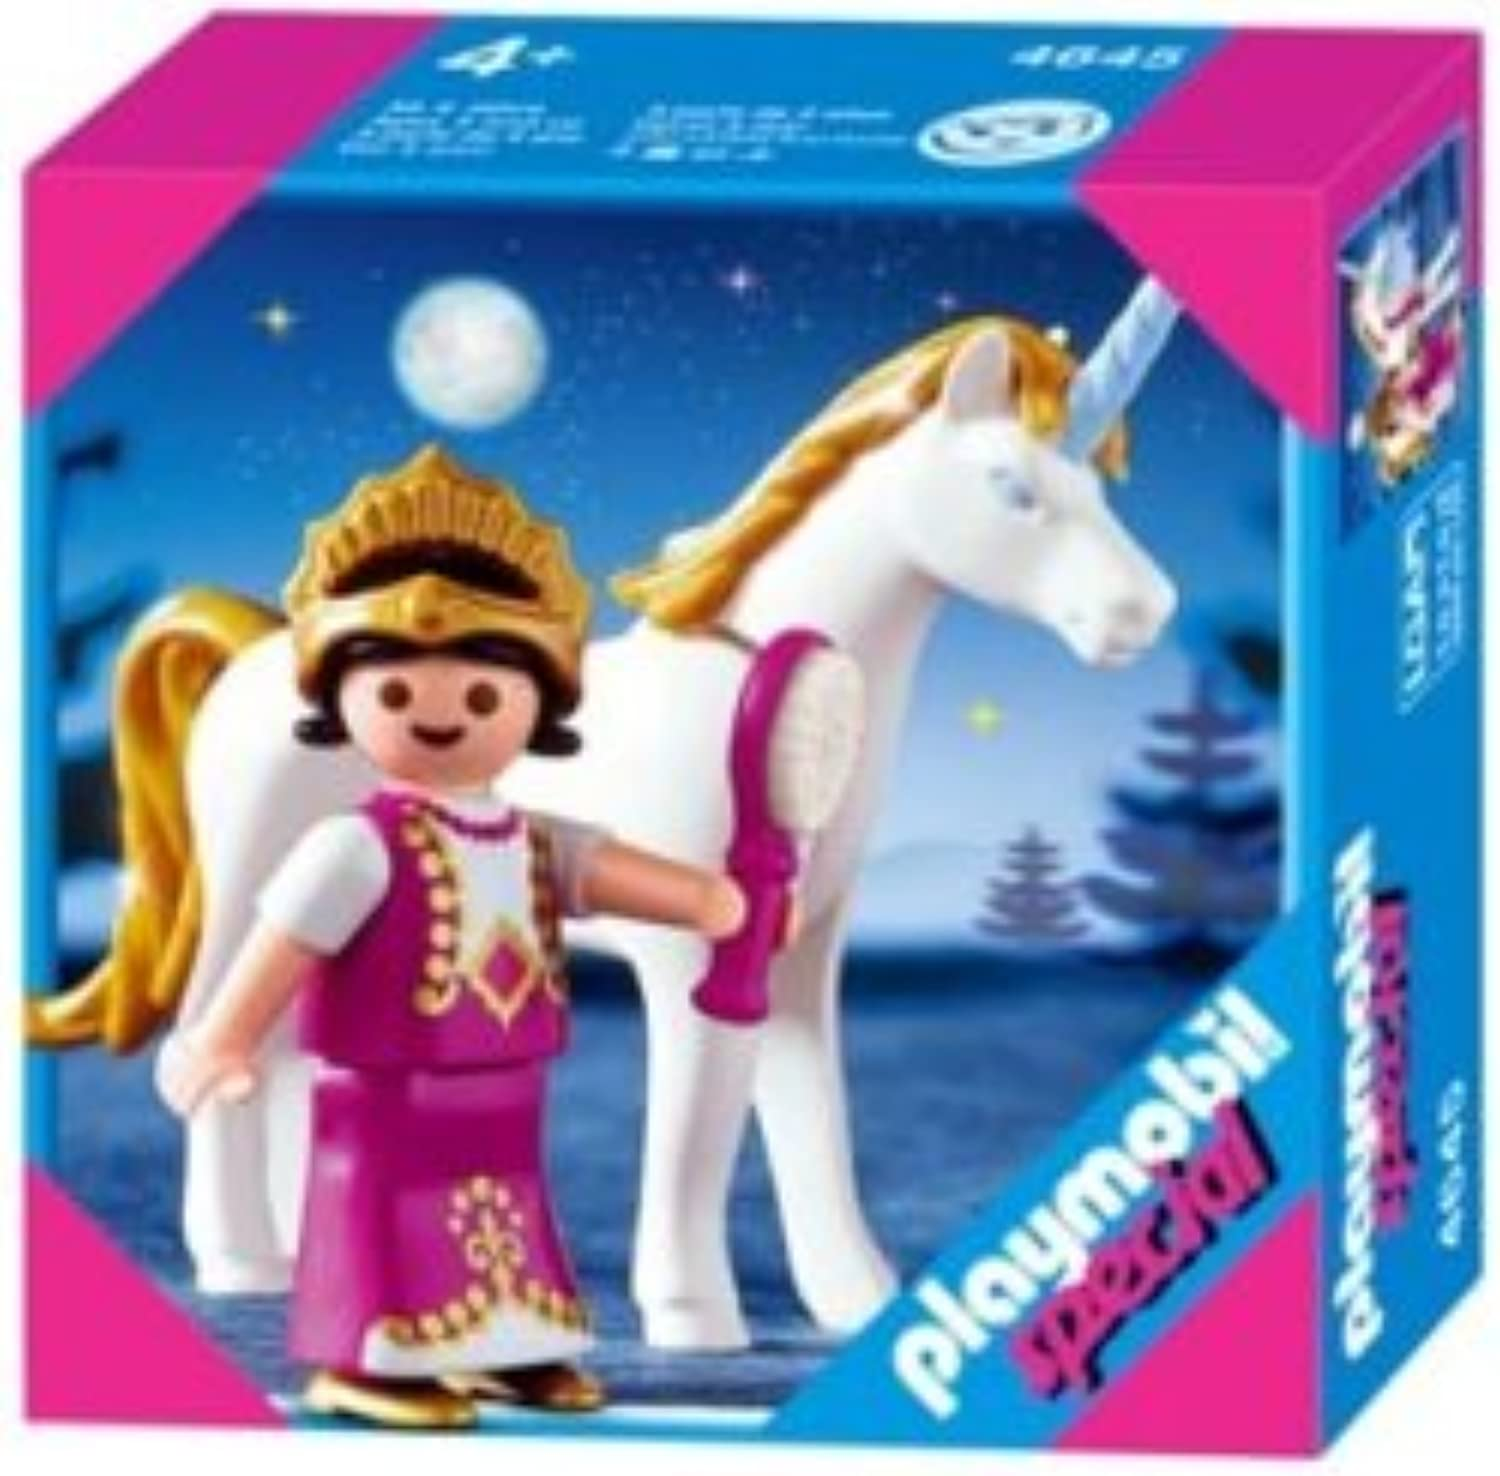 Playmobil Special Special Special Figure 4654 Princess and